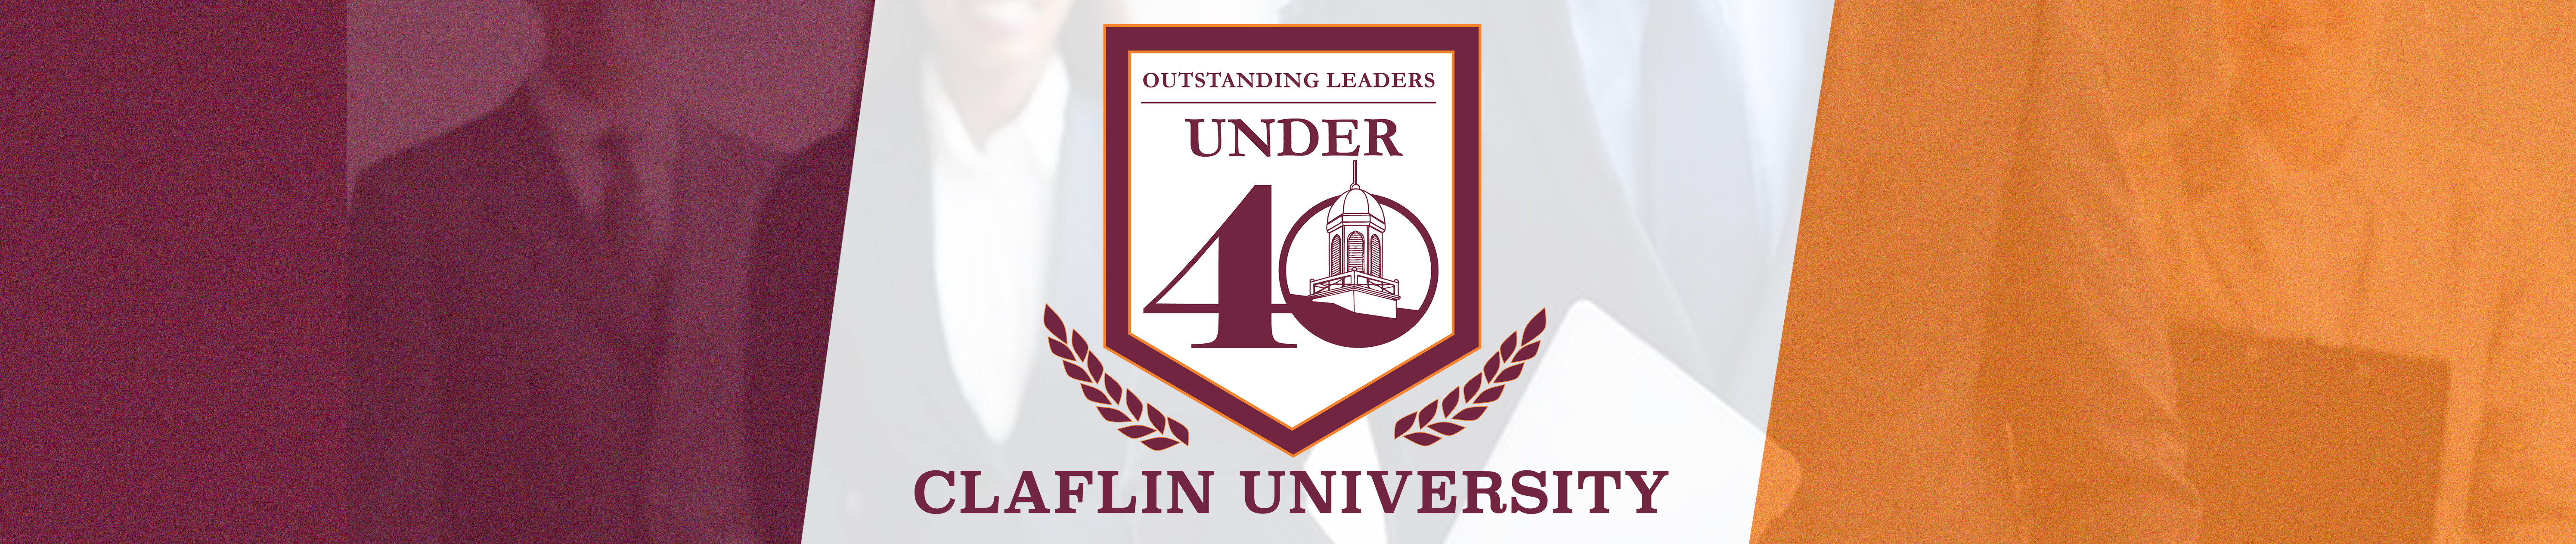 Outstanding Leaders Under 40 banner